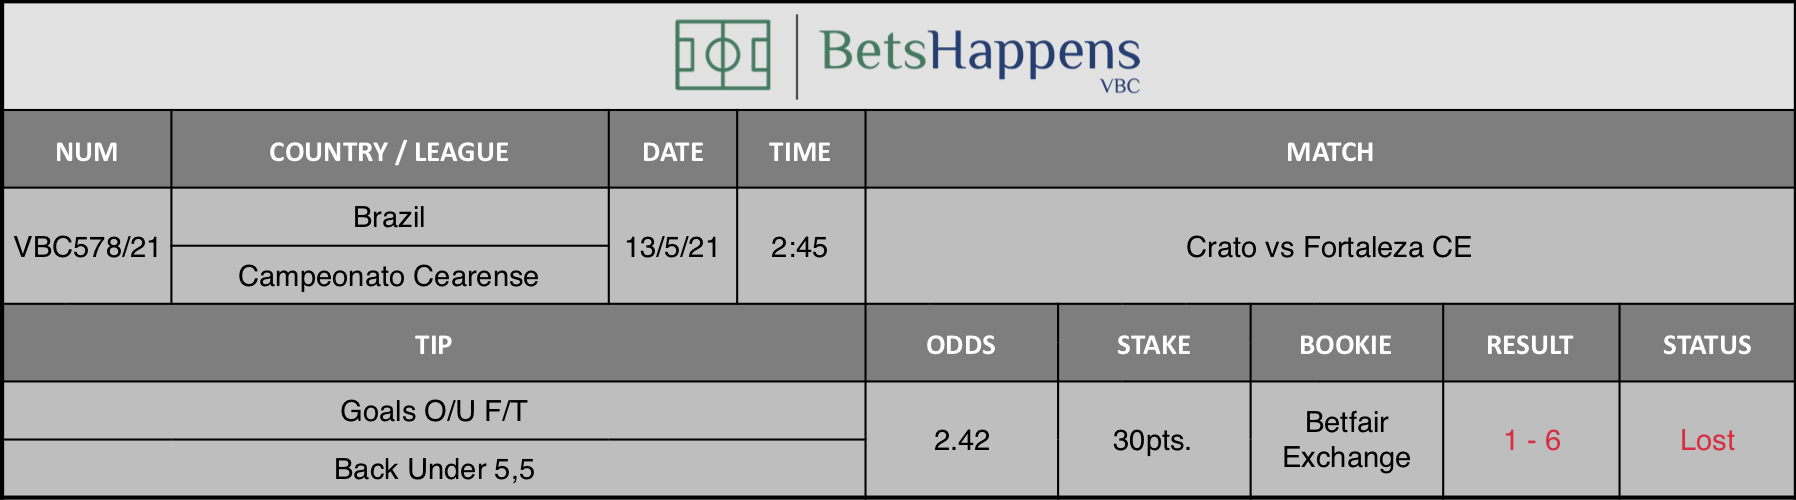 Results of our tip for the Crato vs Fortaleza CE match where Goals O/U F/T Back Under 5,5 is recommended.